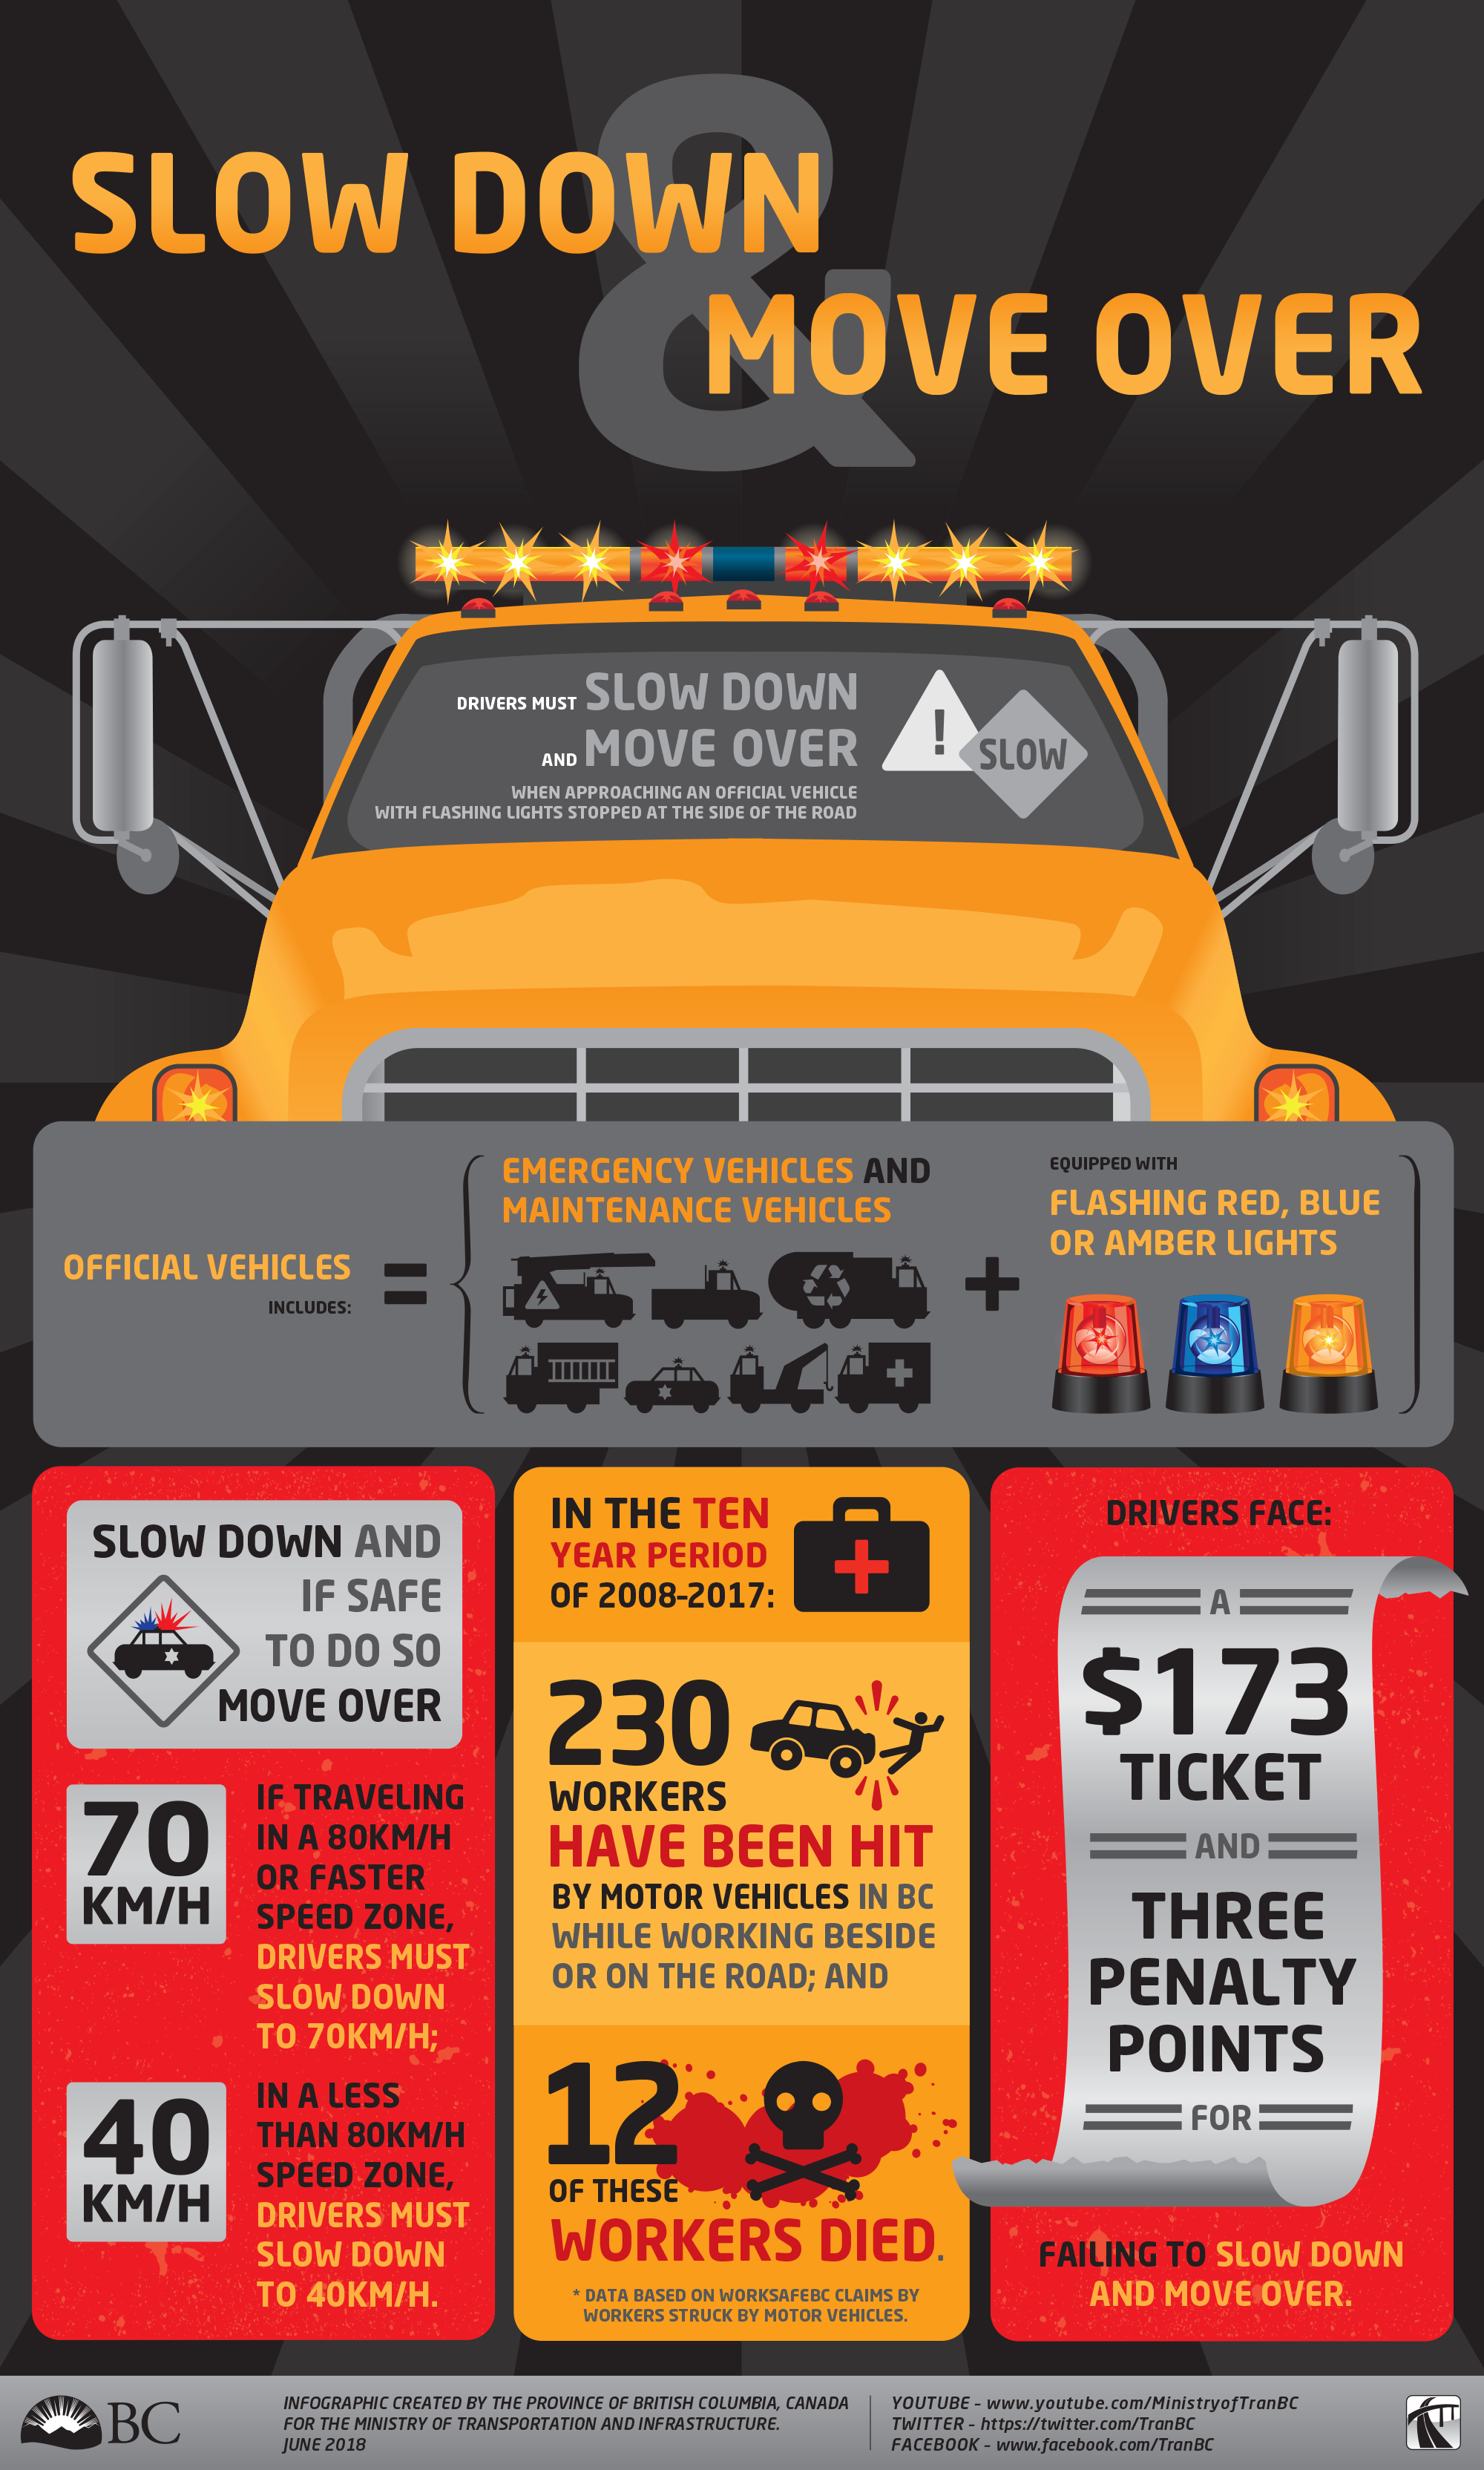 One Change To Slow Down And Move Over Rule Improves Safety